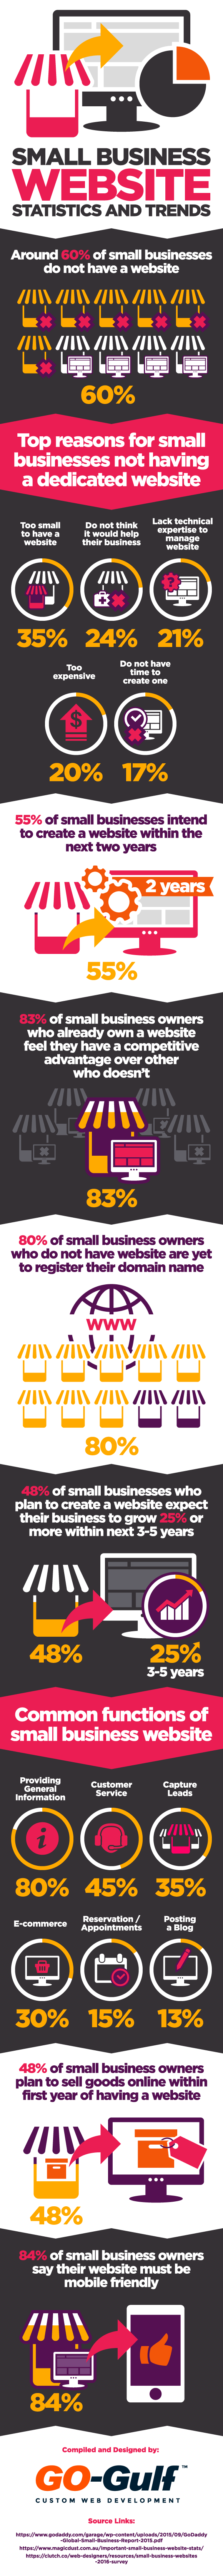 Small Business Website Statistics and Trends